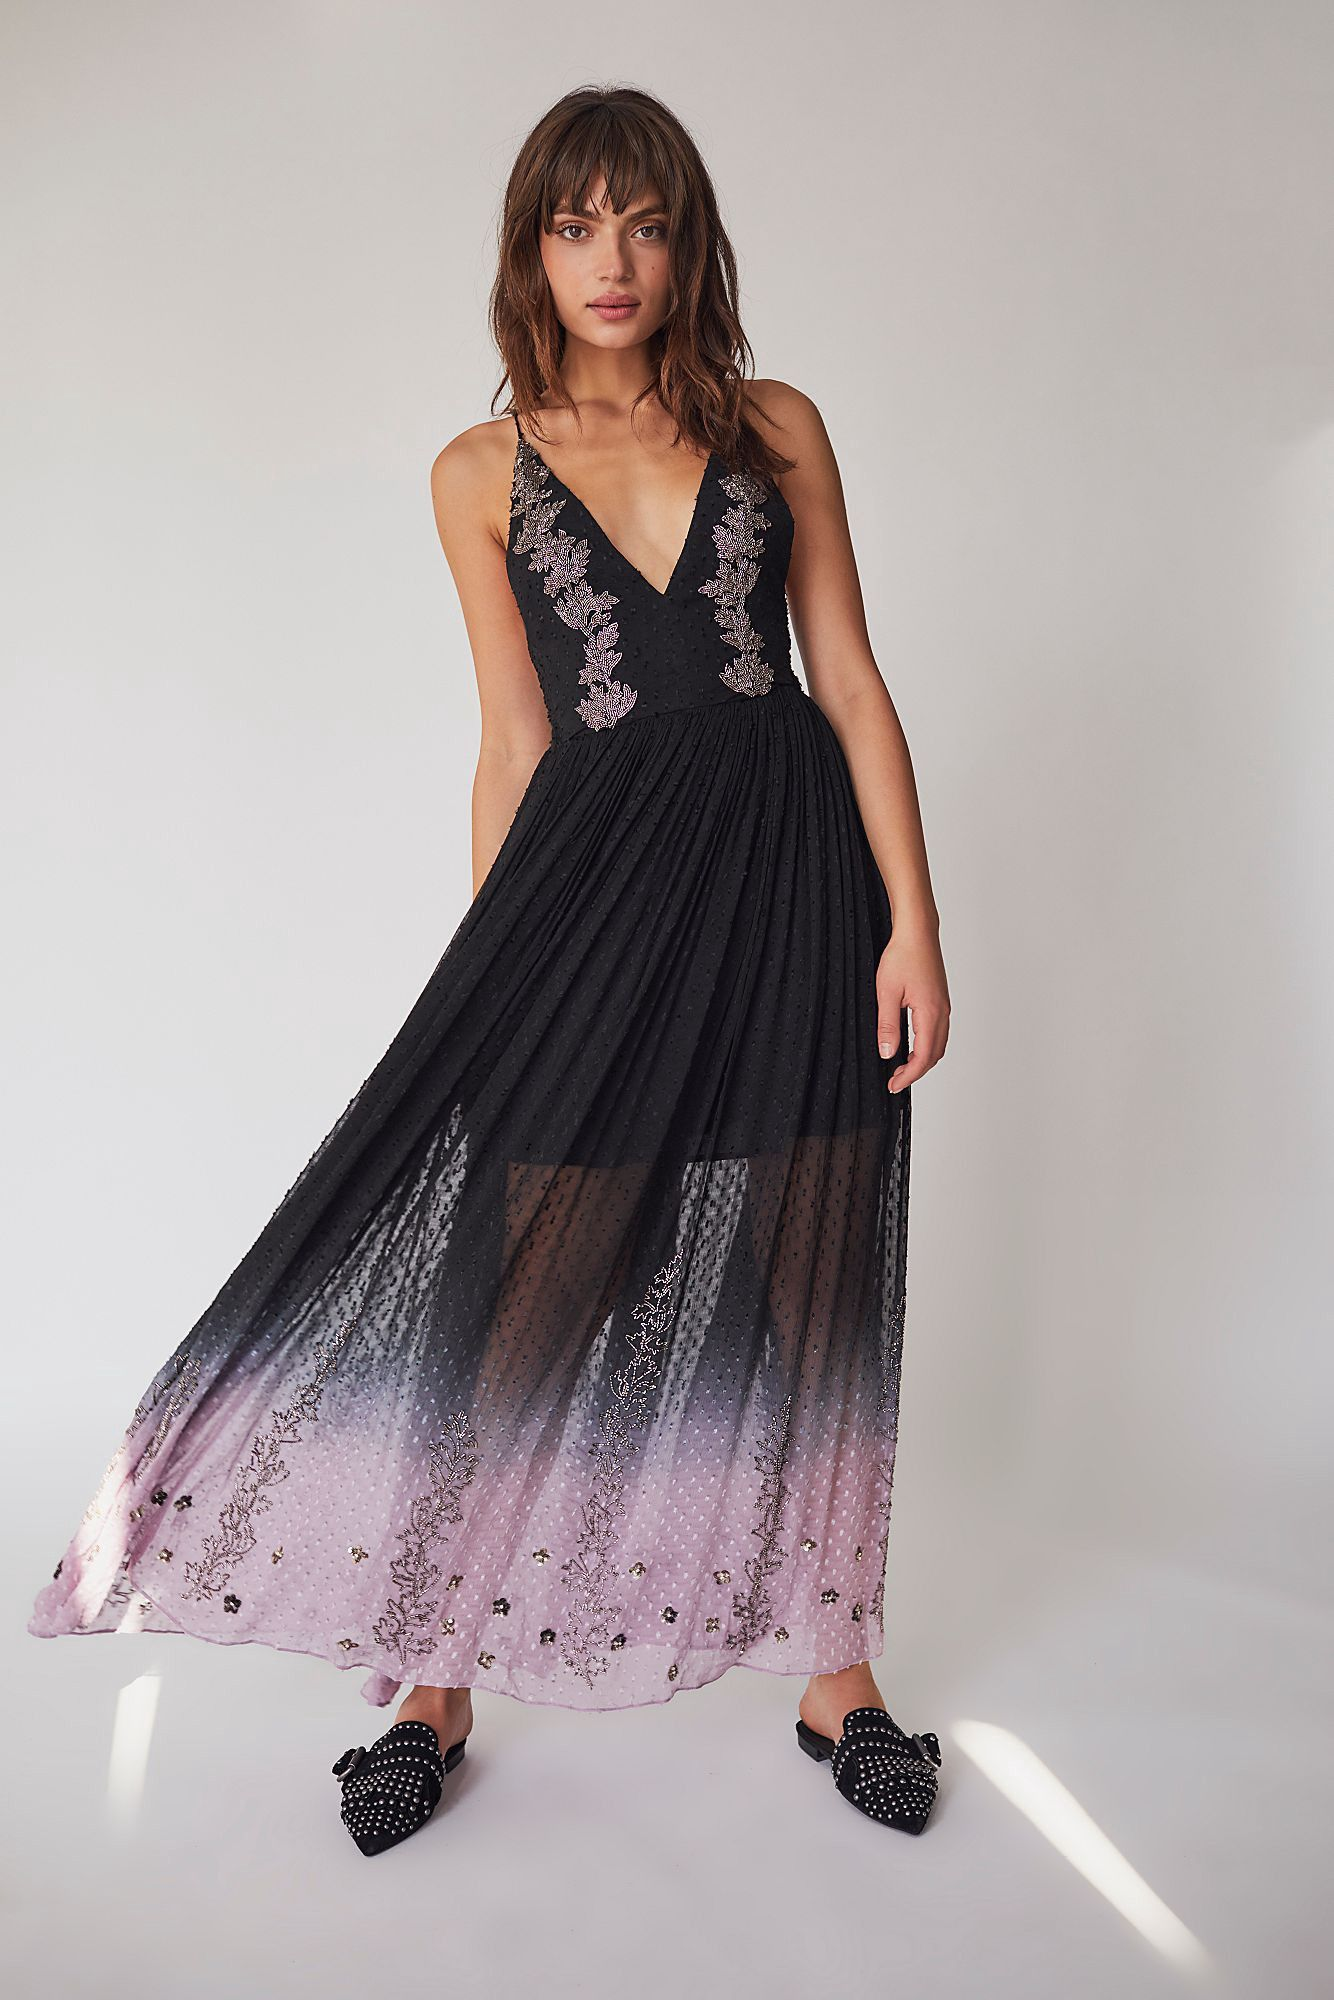 f88679015c1b Free People So Embellished Maxi Dress - Charcoal 4 | Products ...